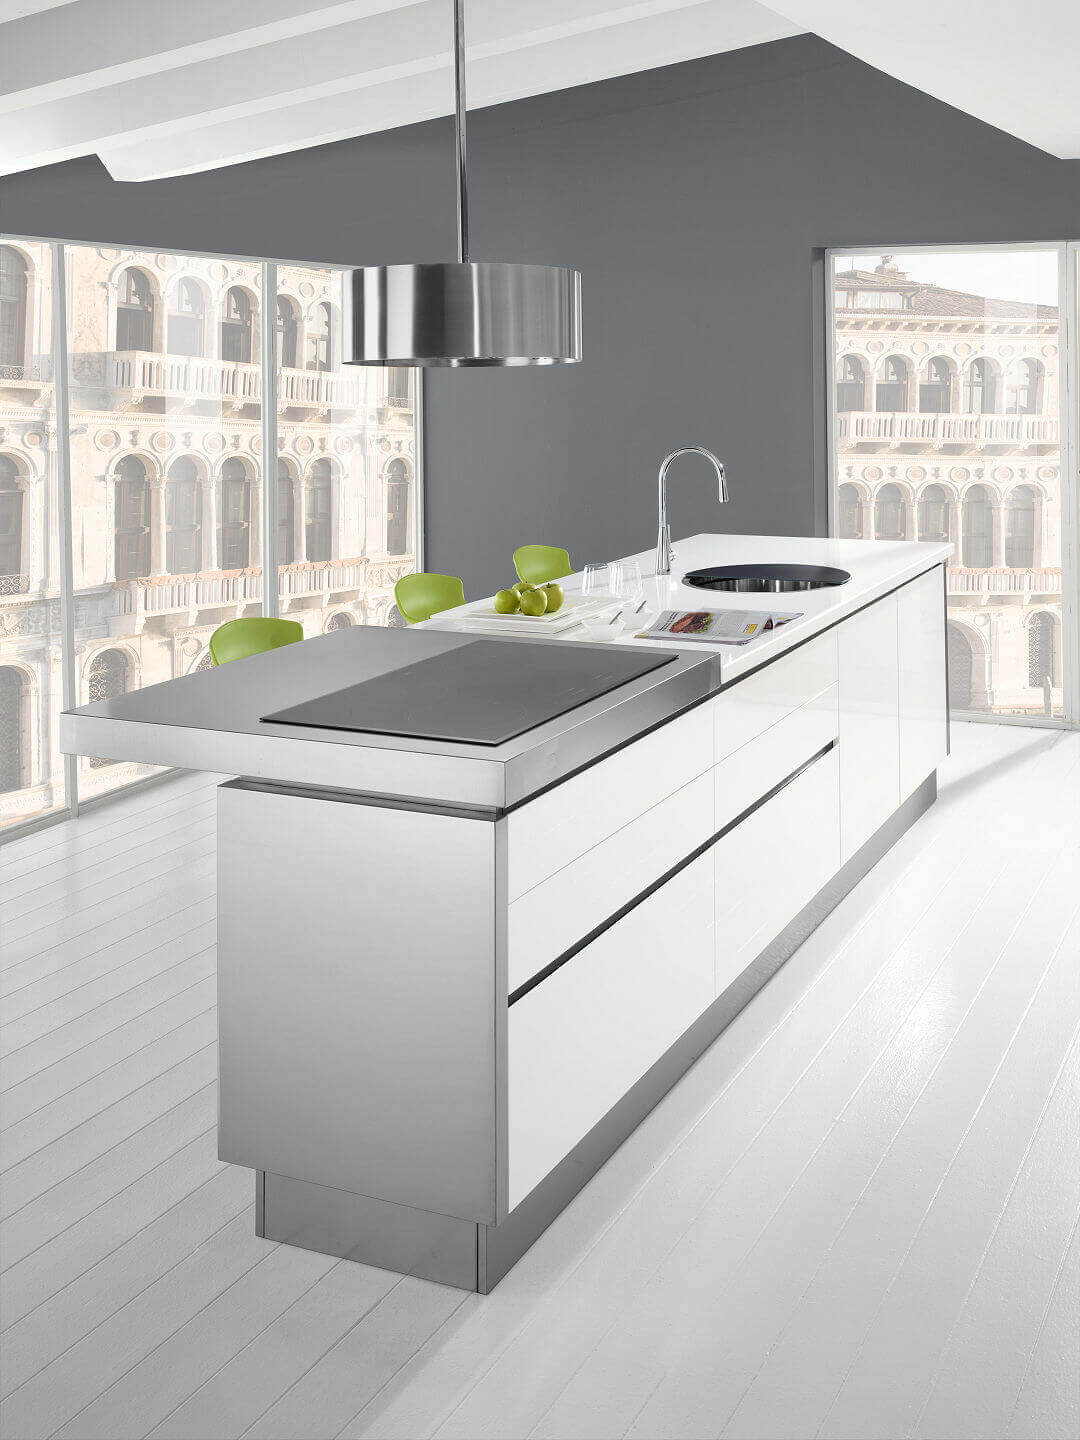 Arca Cucine Italy - Home Kitchen Stainless Steel - model Trend